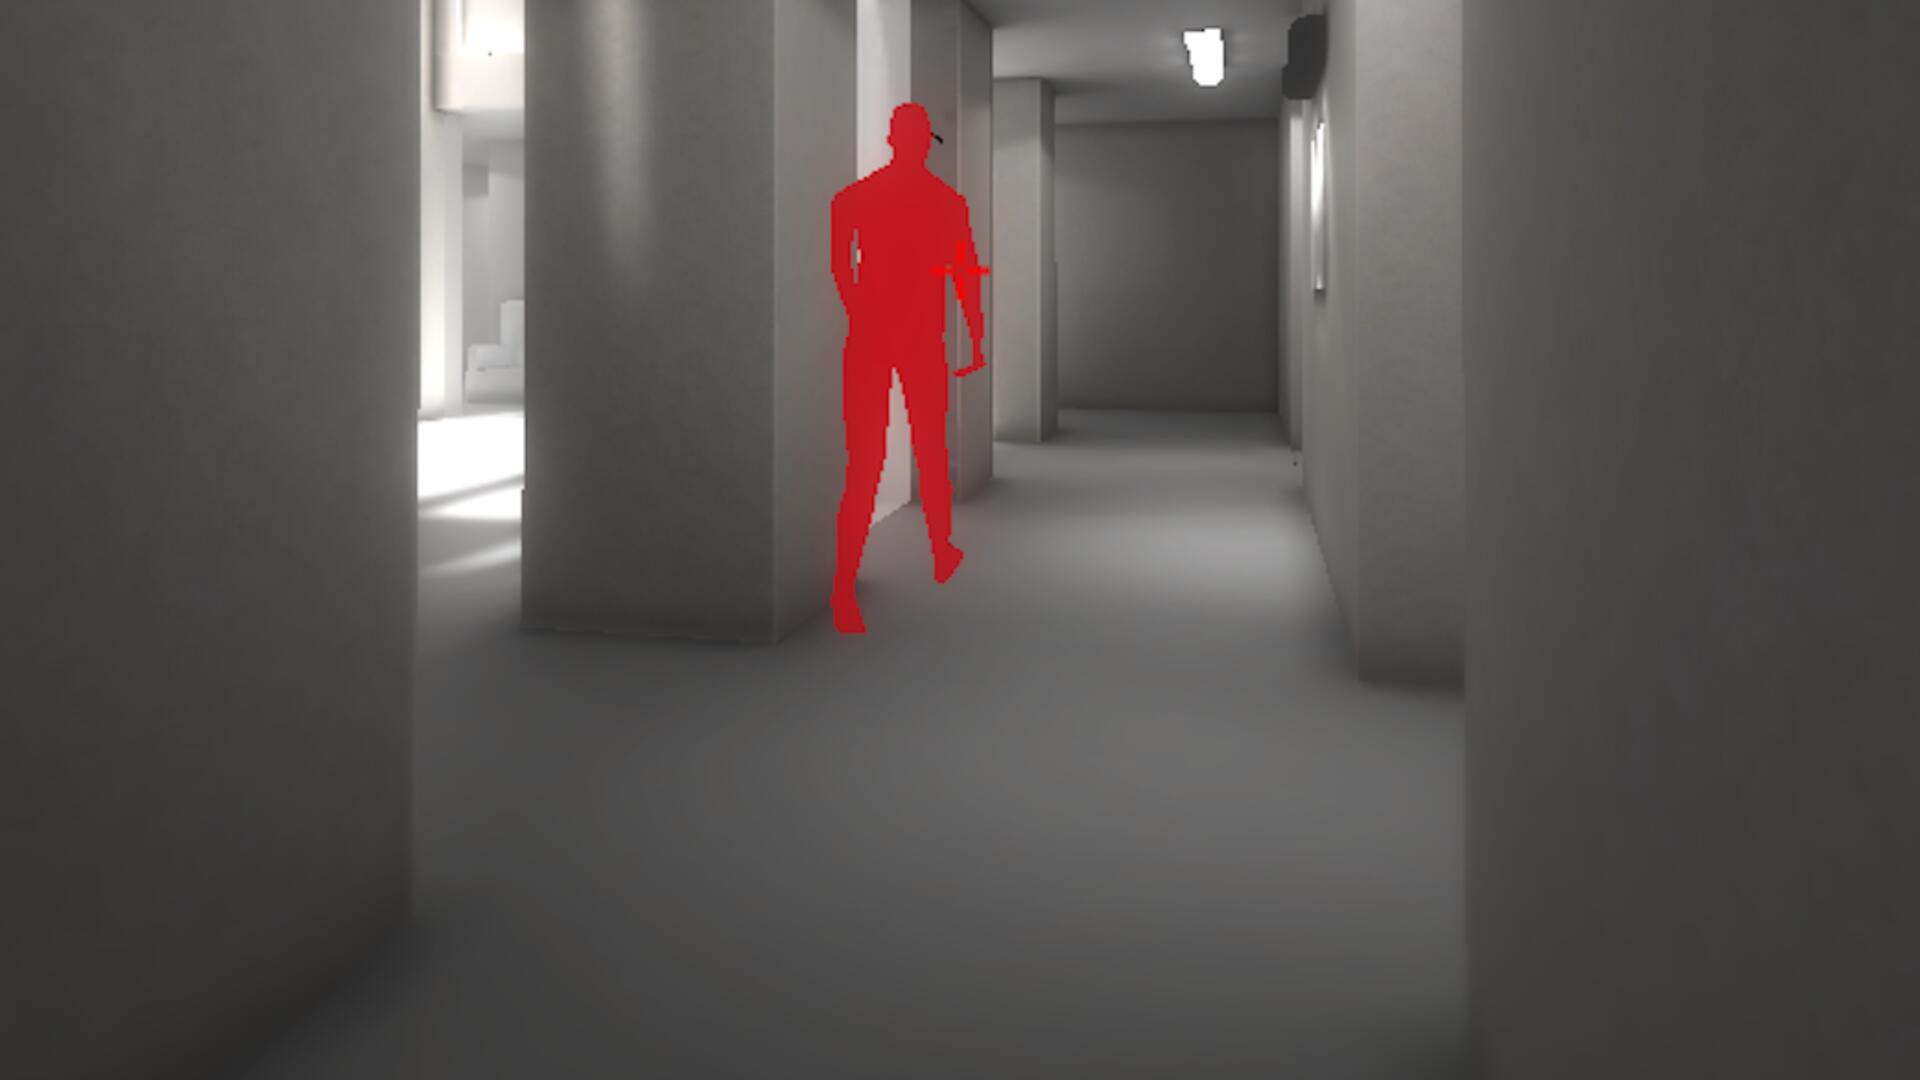 Superhot is a Super-Innovative FPS